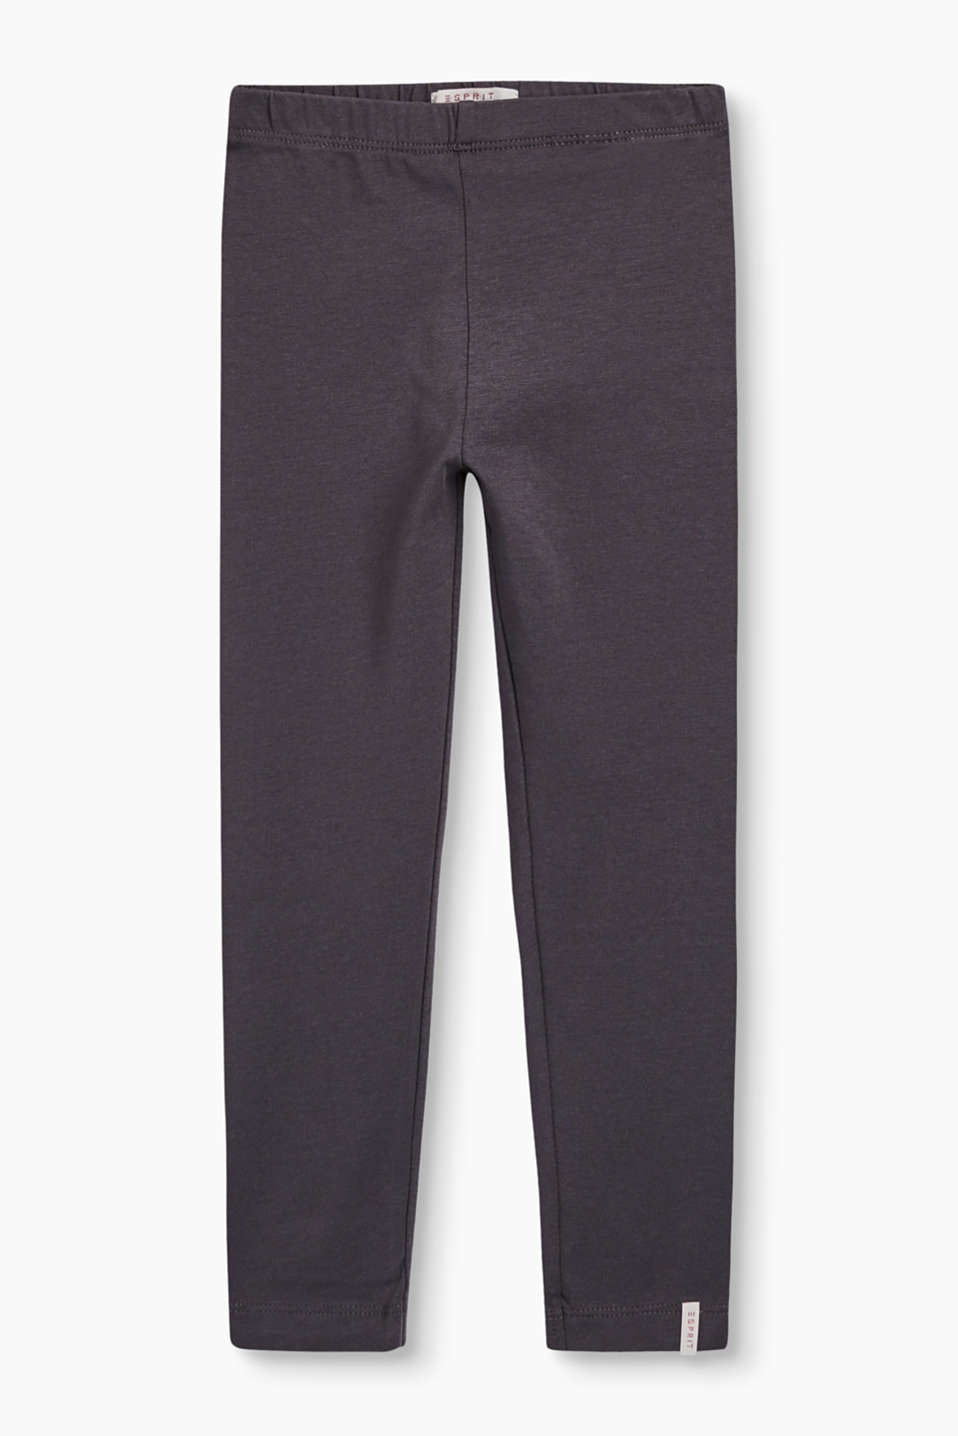 Esprit - Basic Leggings aus Baumwoll-Stretch